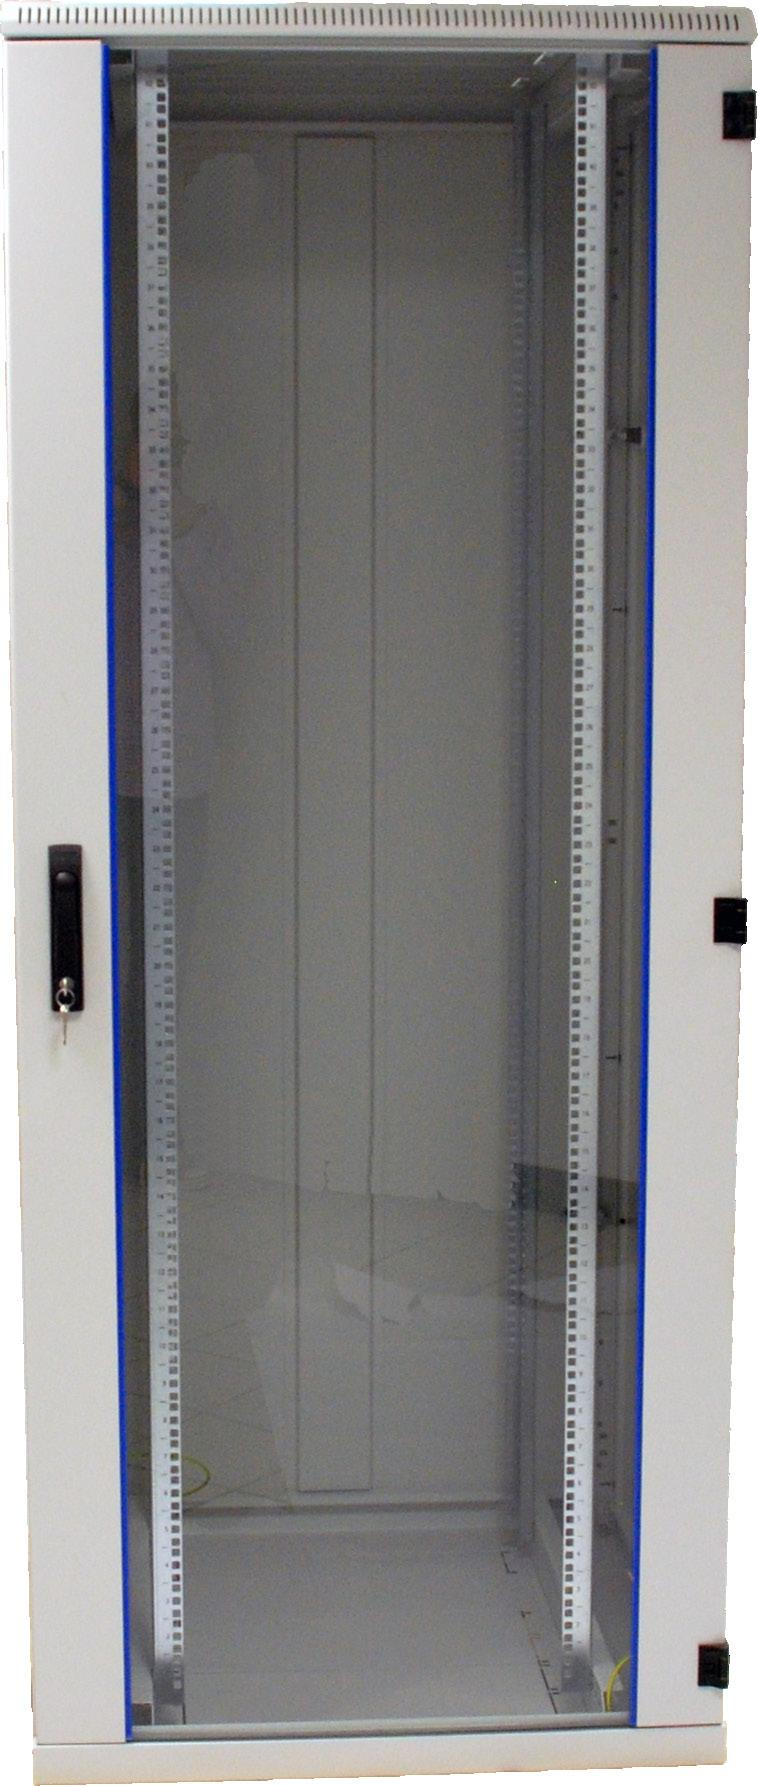 depth-adjustable 19 profiles with numbering of rack units rear door in full height with 2-point latch locking Common Specifications 19 network cabinet according to DIN41494 Steel sheet housing with